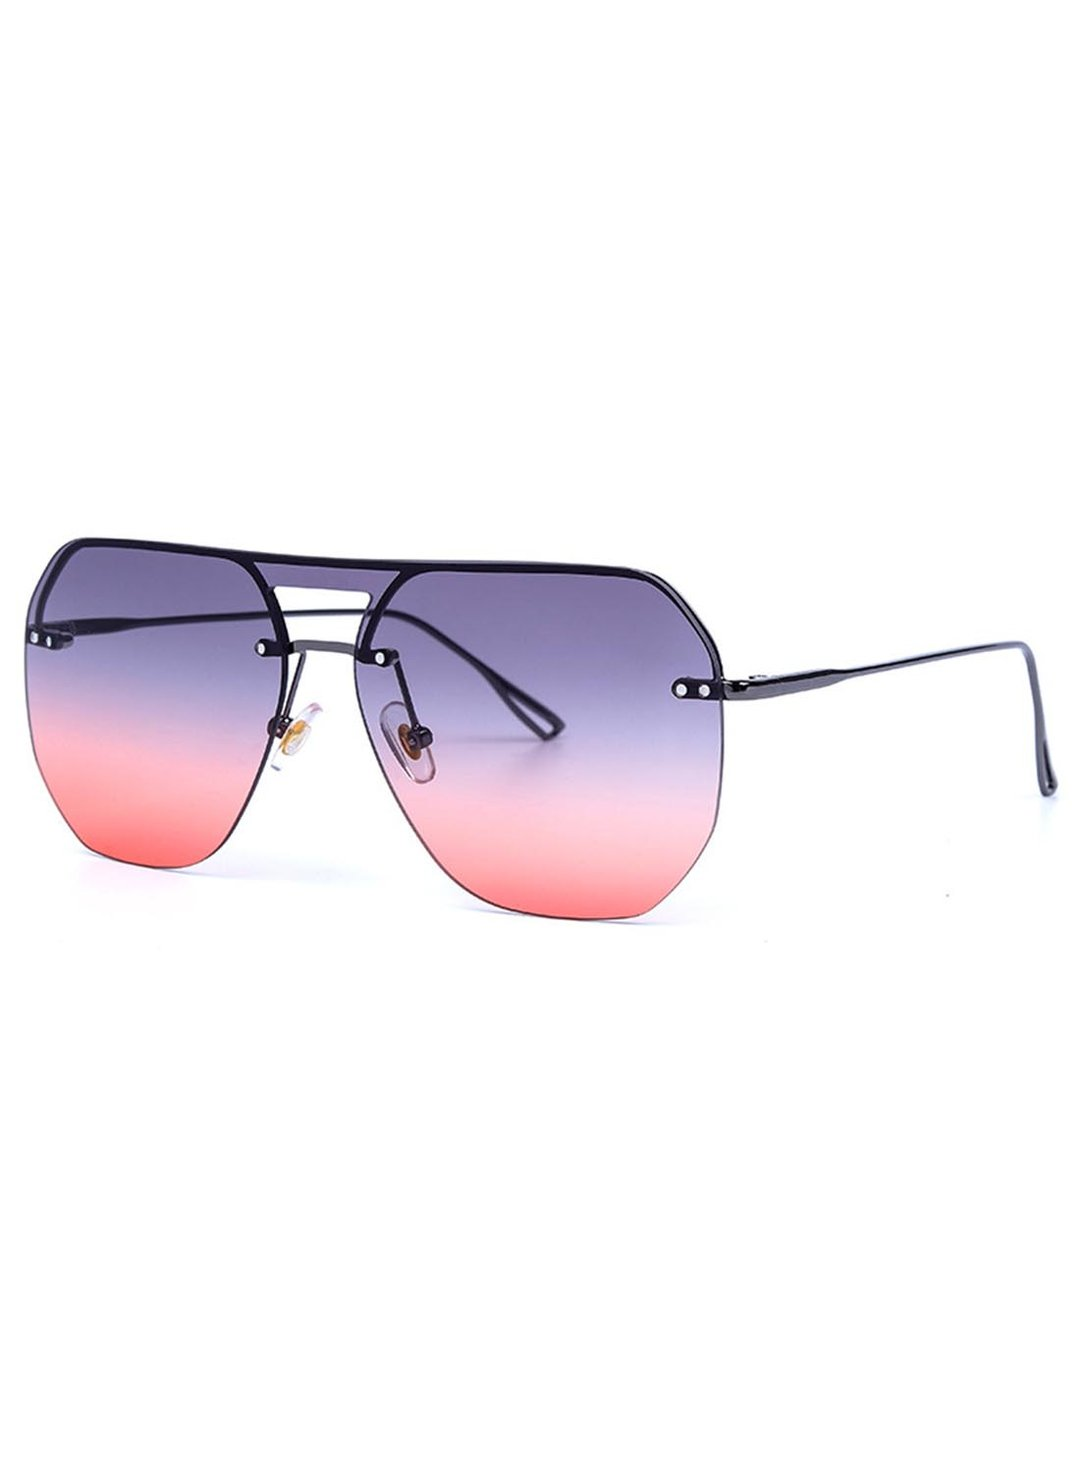 Pink Women's Sunglasses Gradient Sunglasses LC023050-10